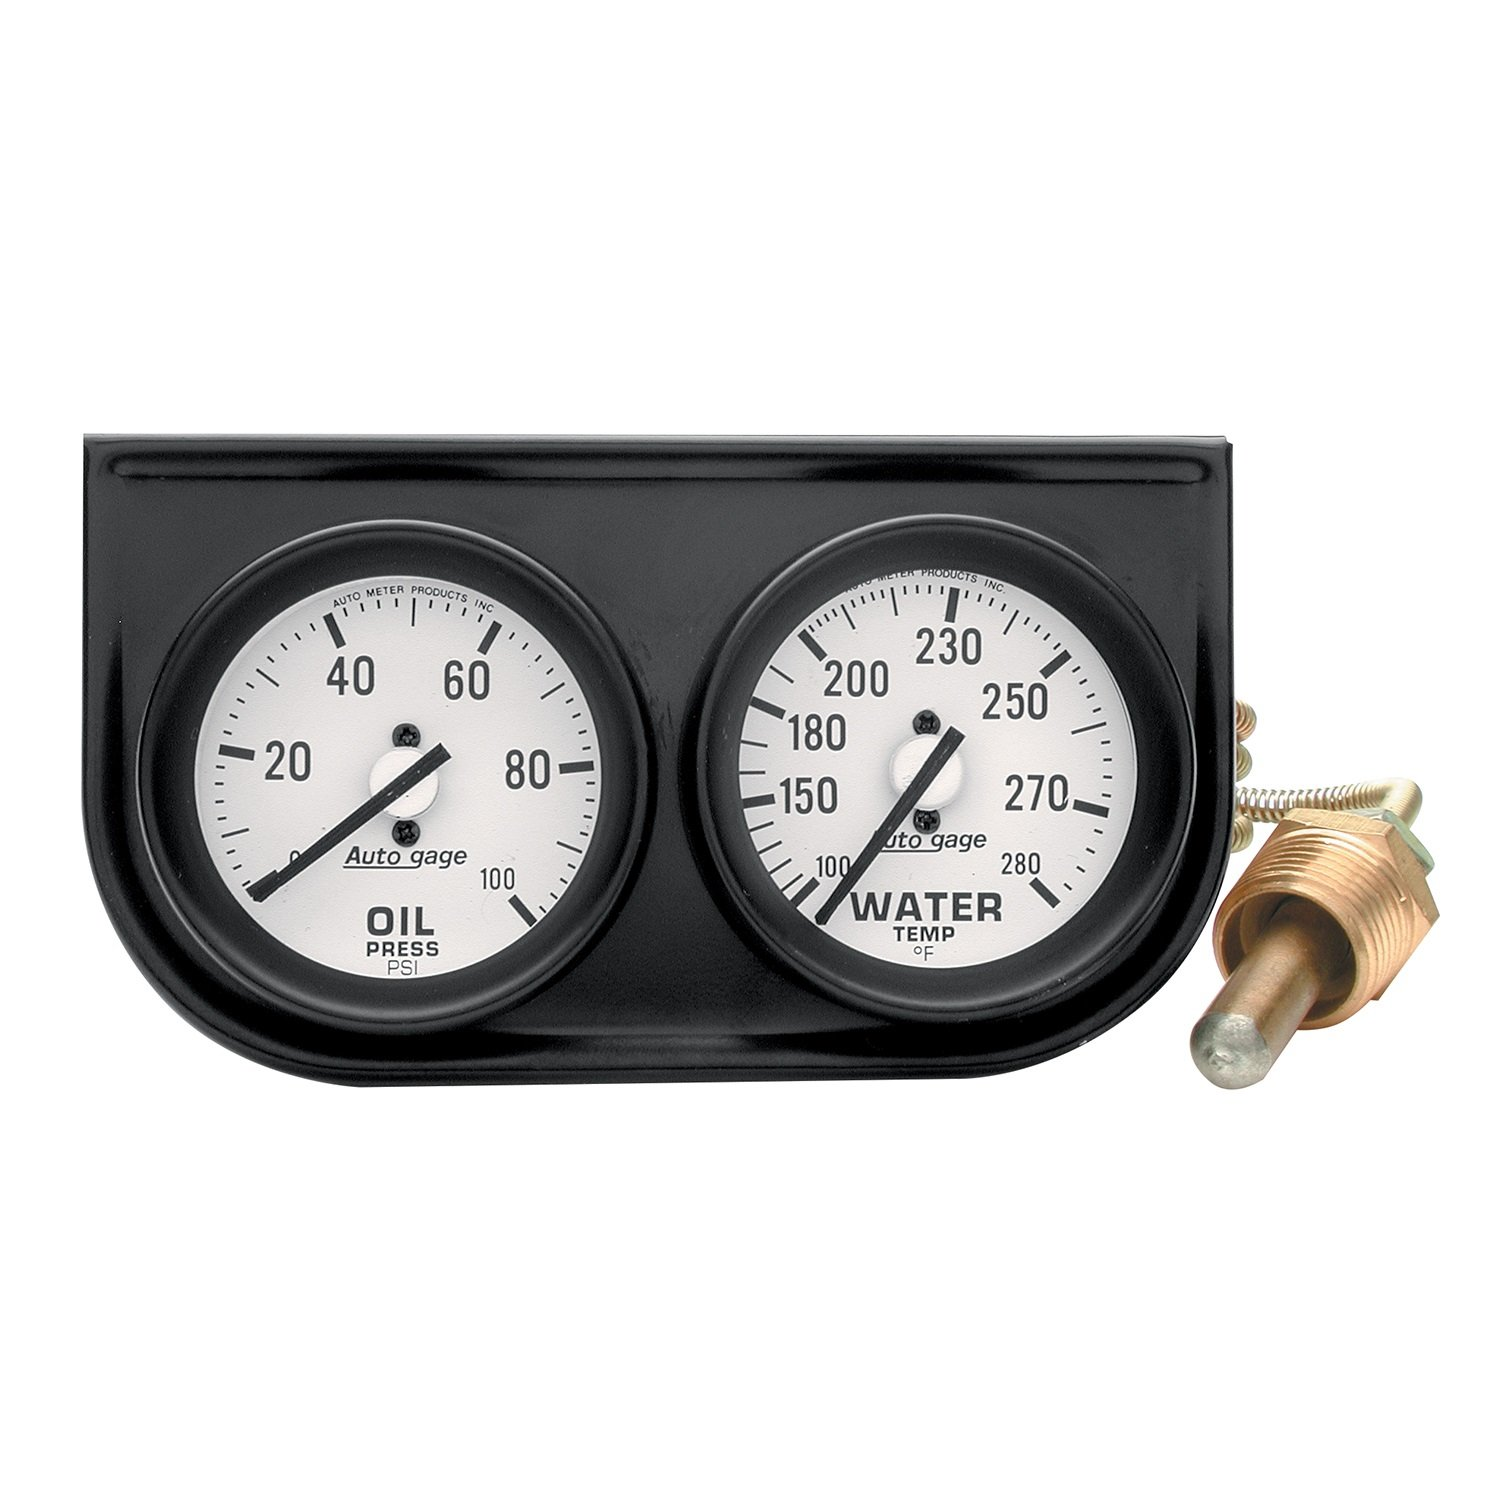 Auto Meter 2326 Auto Gage Black 2'' Mechanical Two-Gauge Console